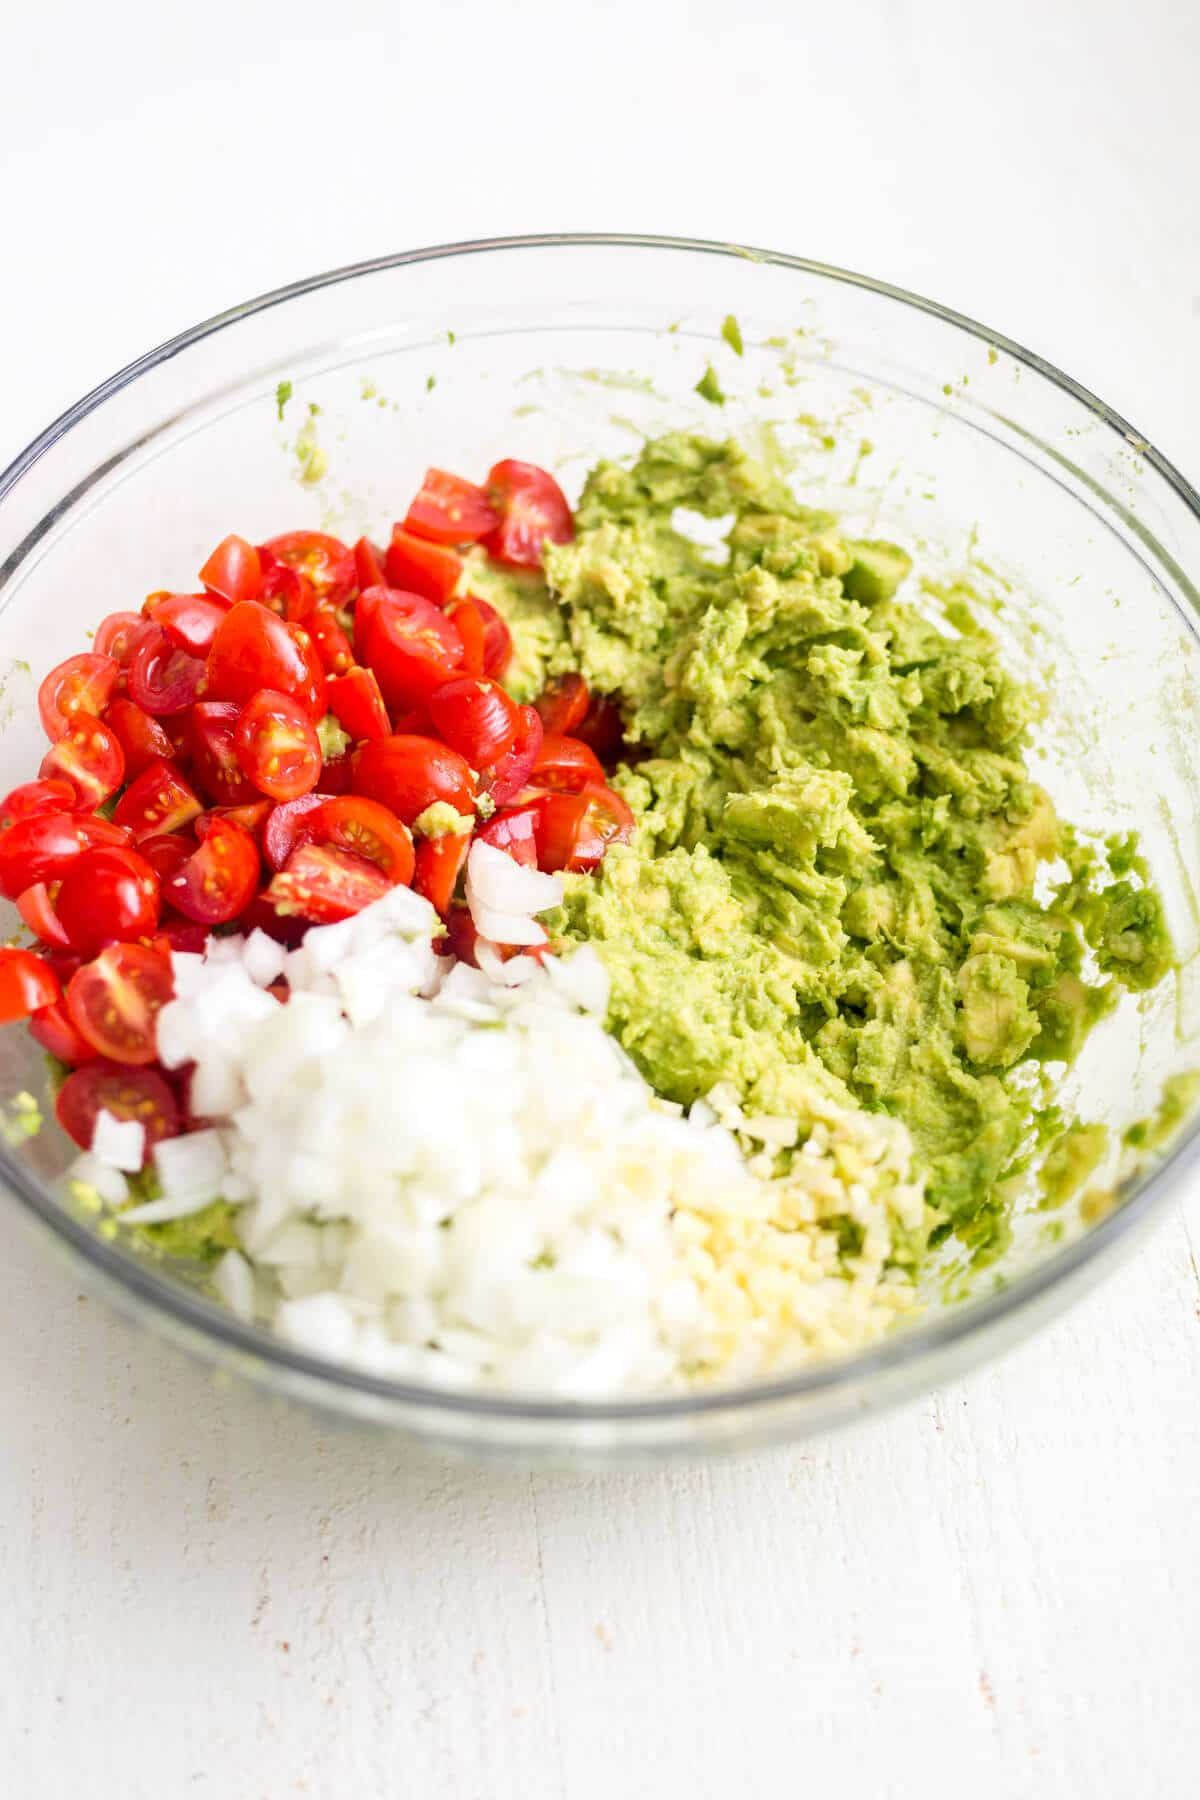 healthy guacamole ingredients